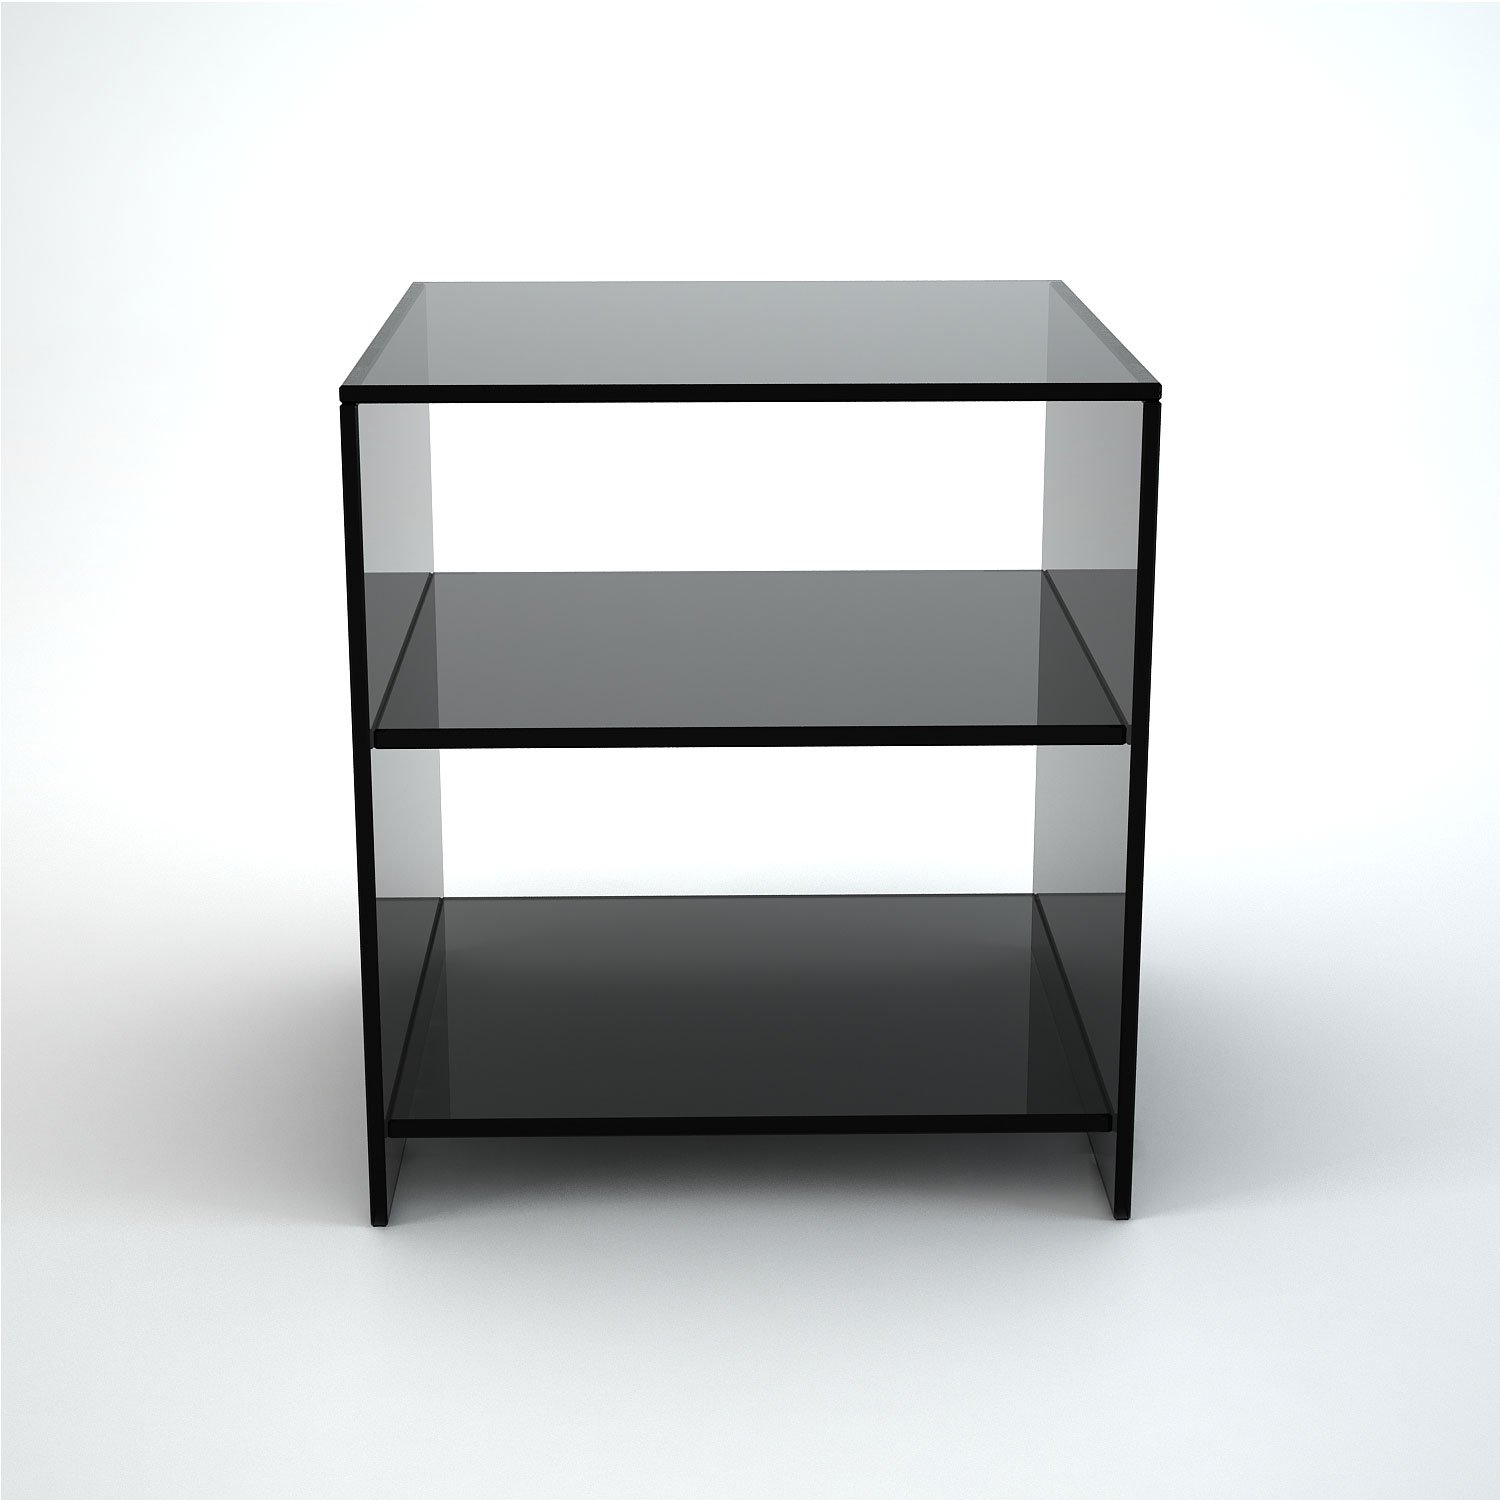 Judd Smoked Glass Side Table With Shelves Klarity Glass Furniture